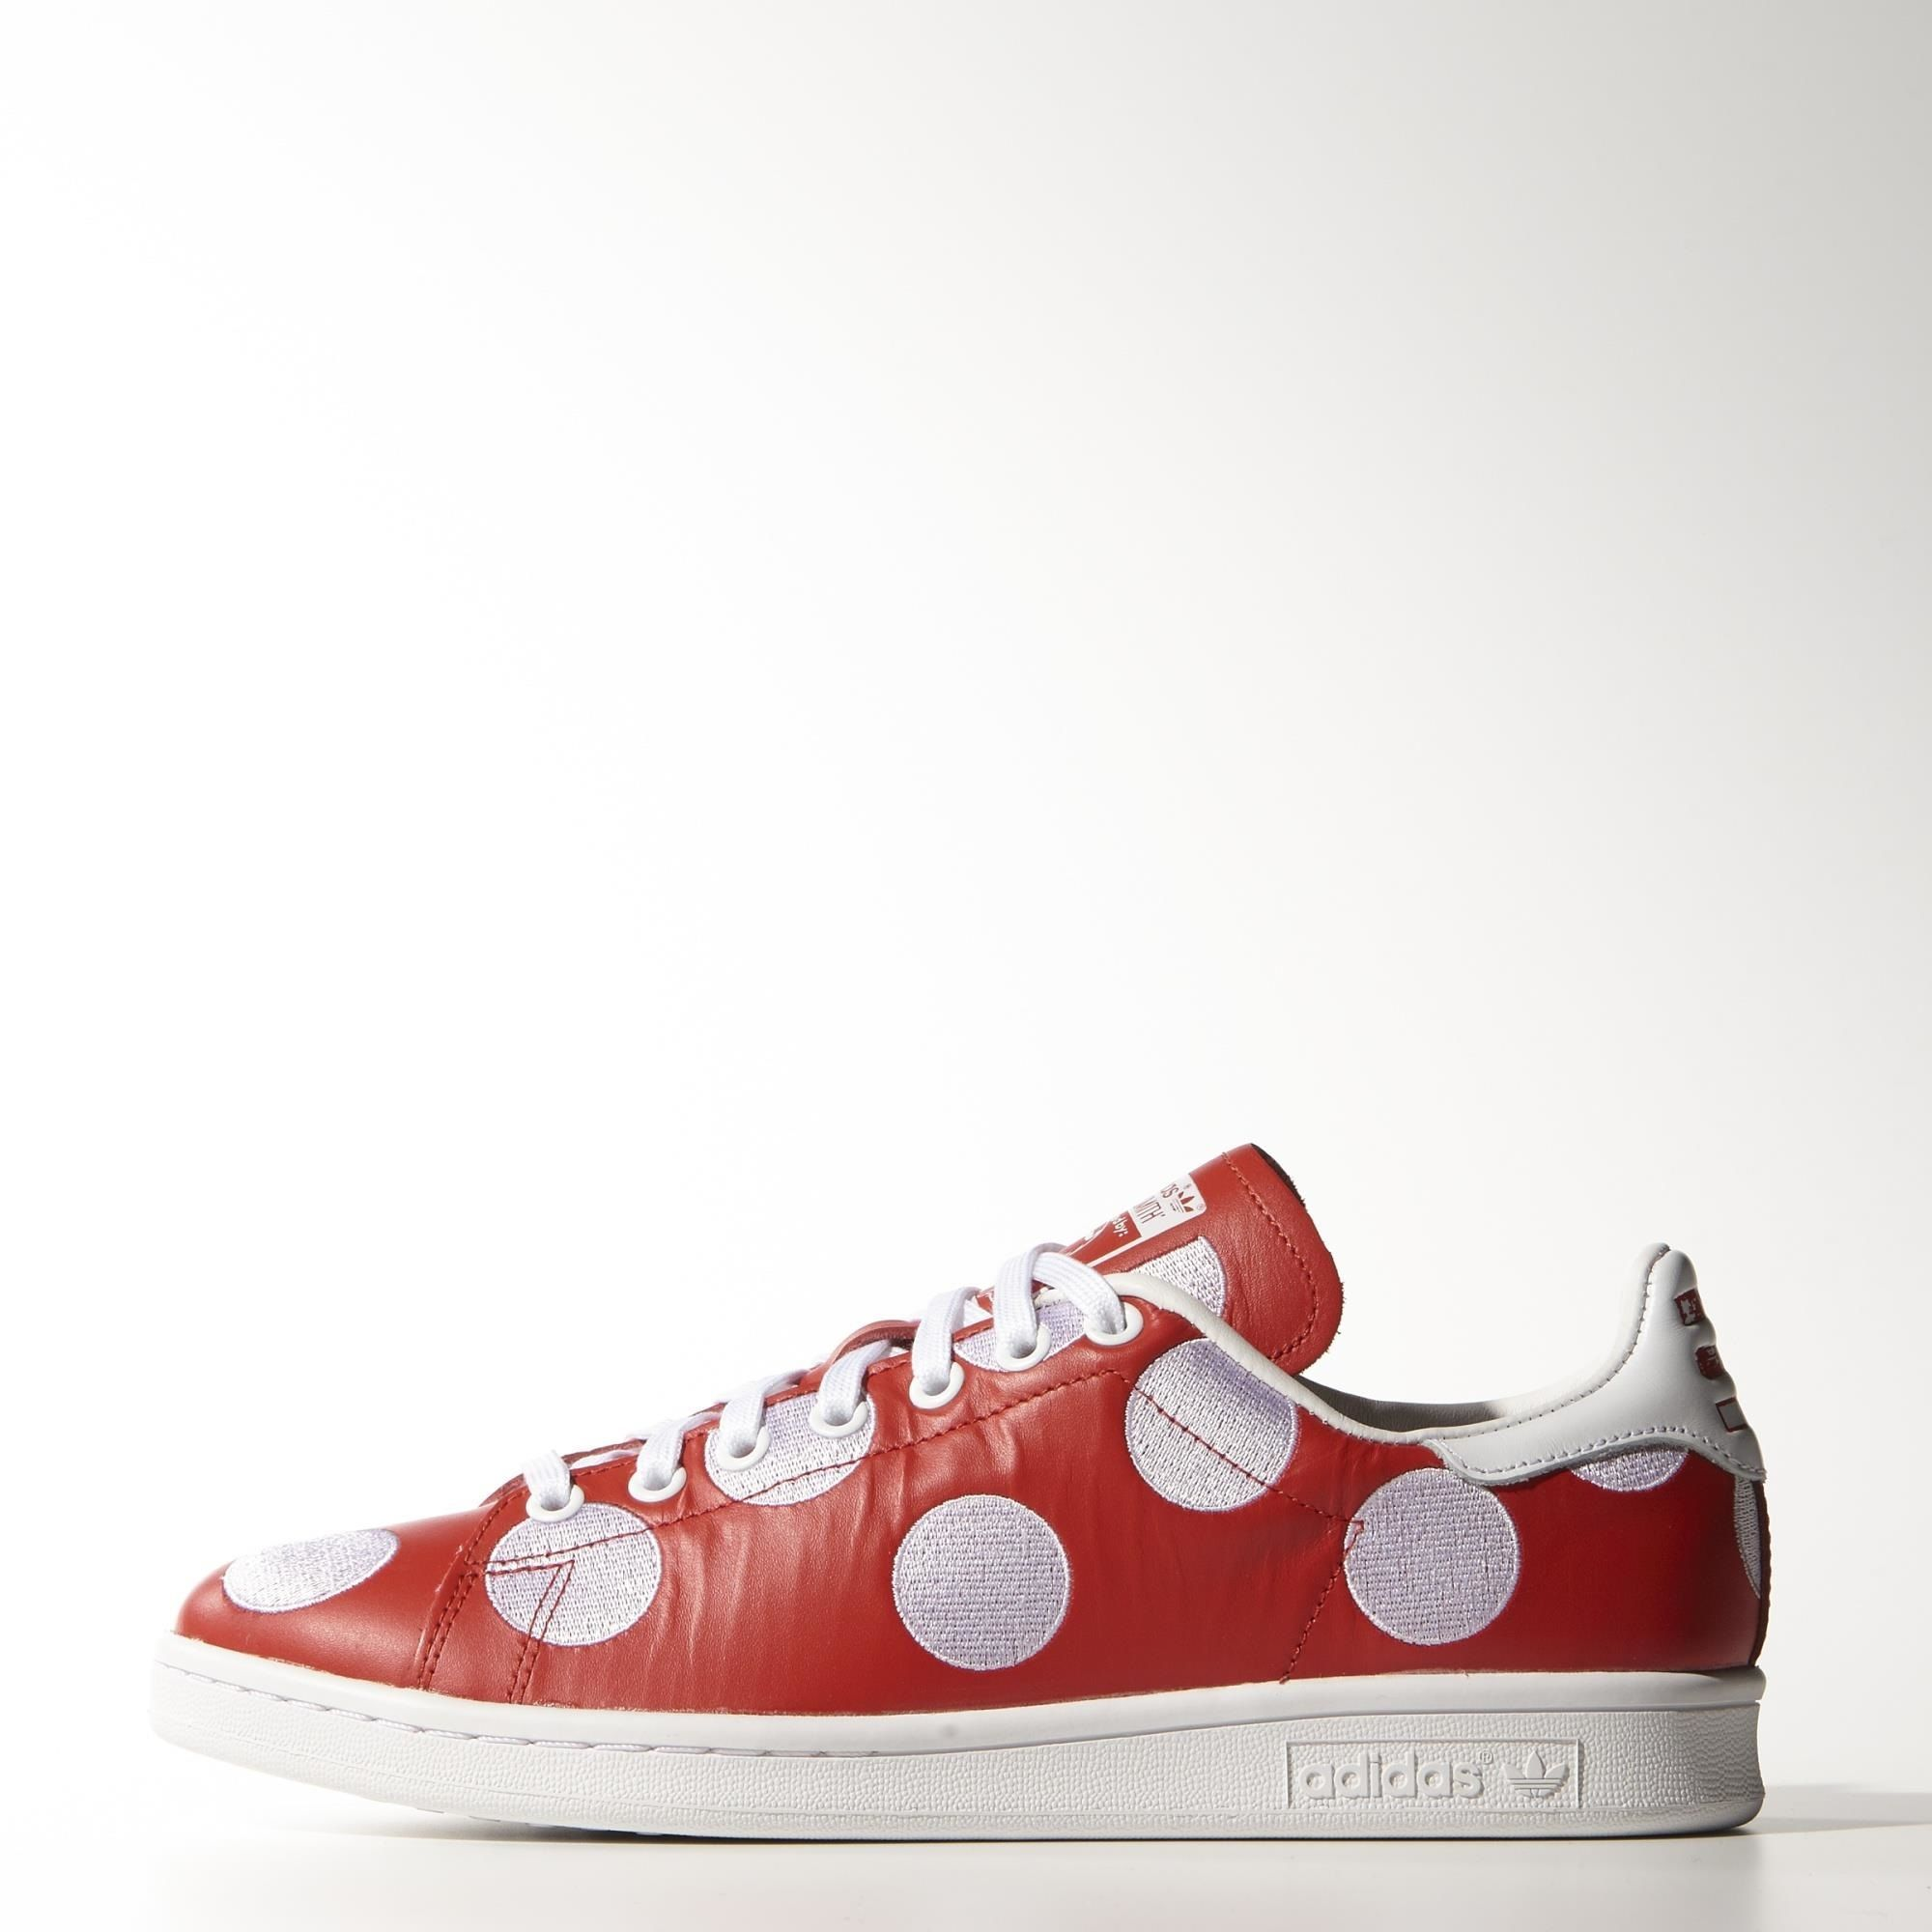 adidas big polka dot shoes